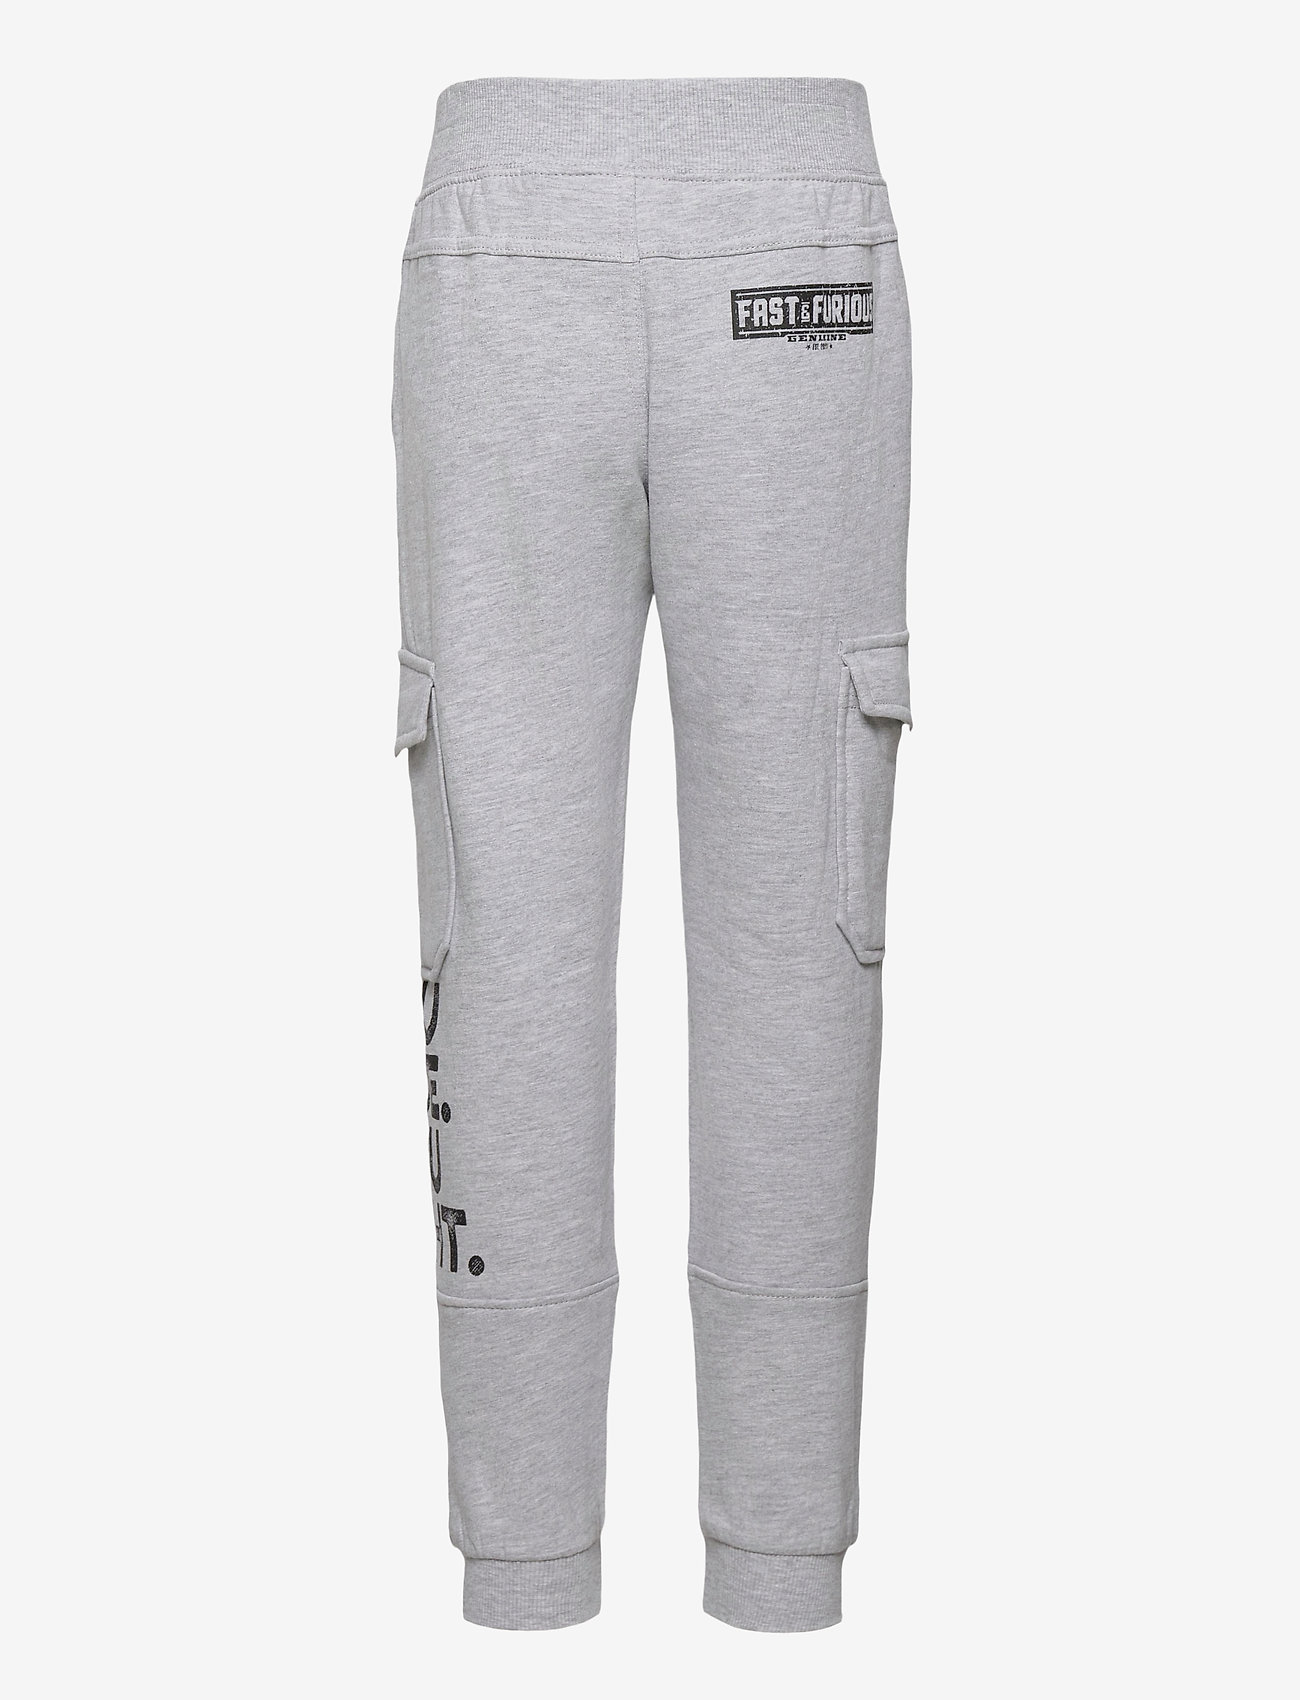 Fast & Furious - TROUSER - trousers - grey - 1